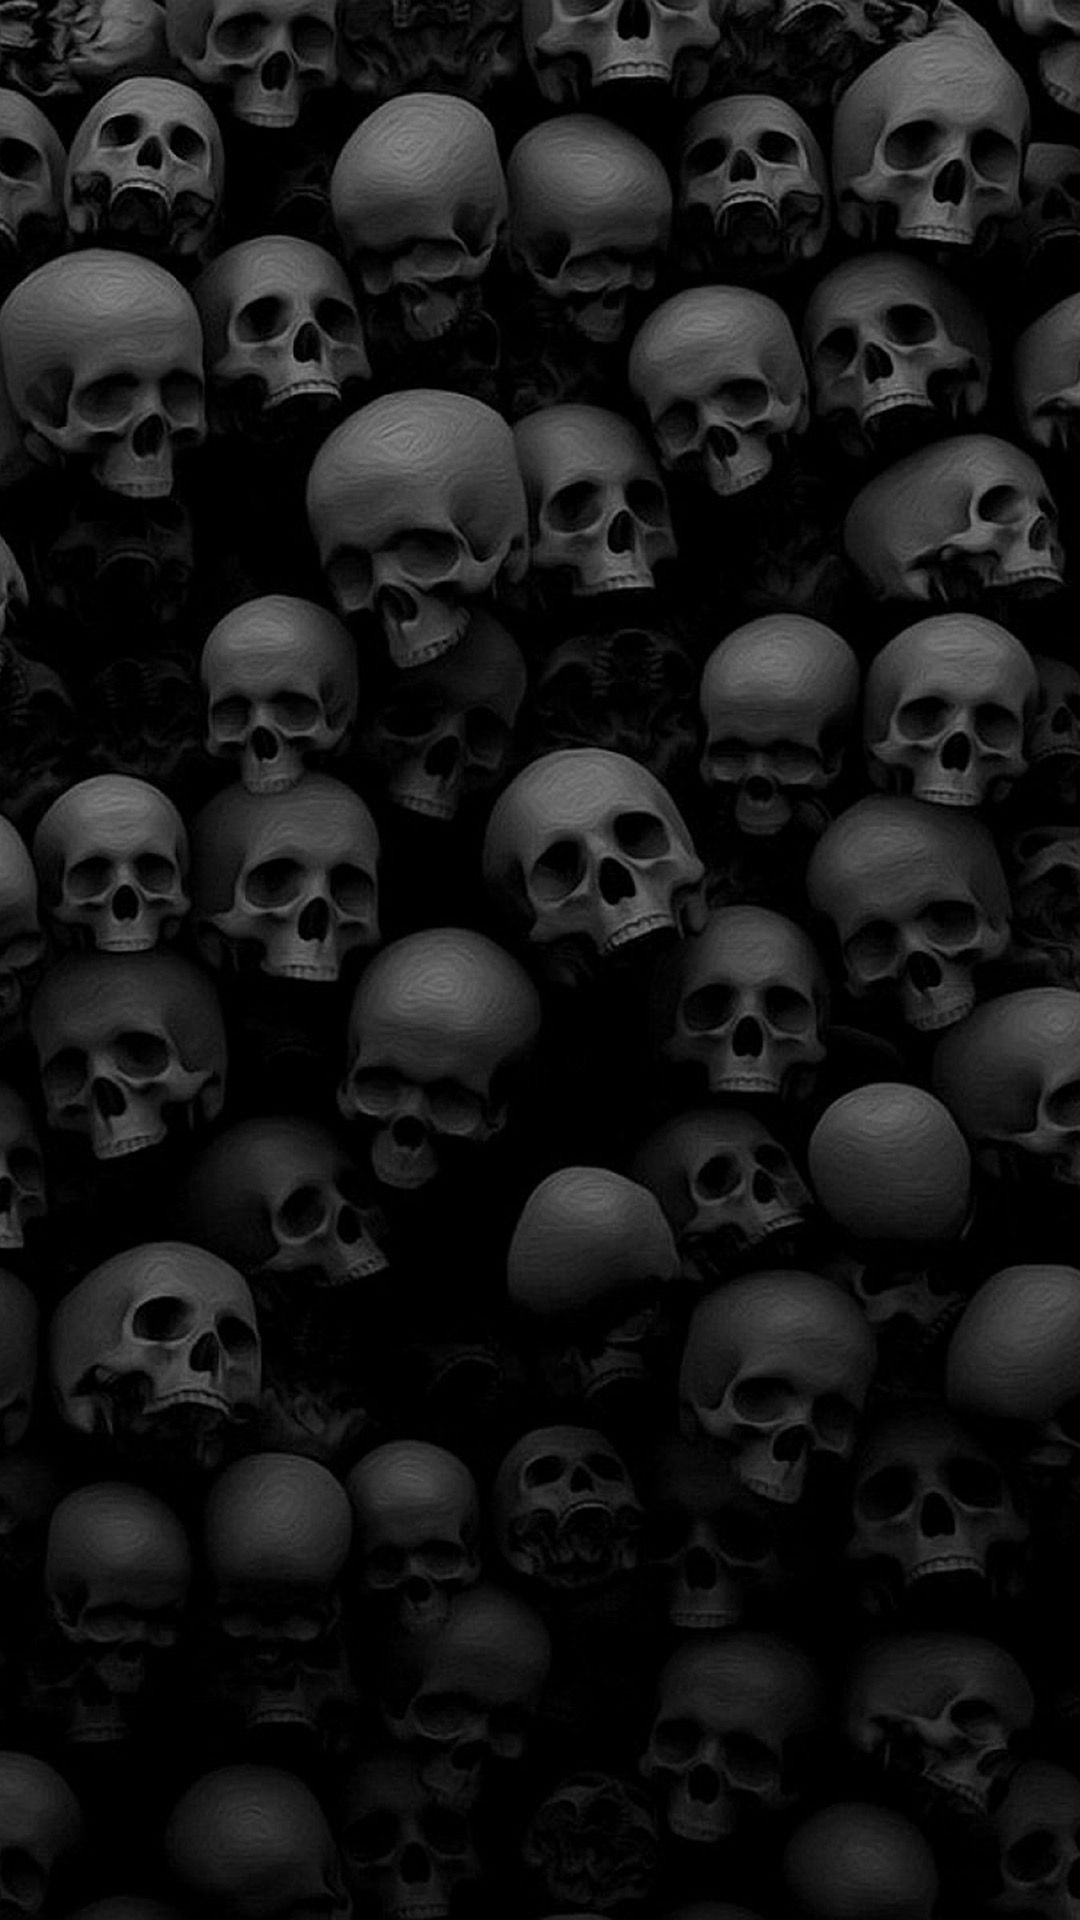 Skull HD Wallpapers Serba HITAM Versions Cby Rhendy Hostta Thank